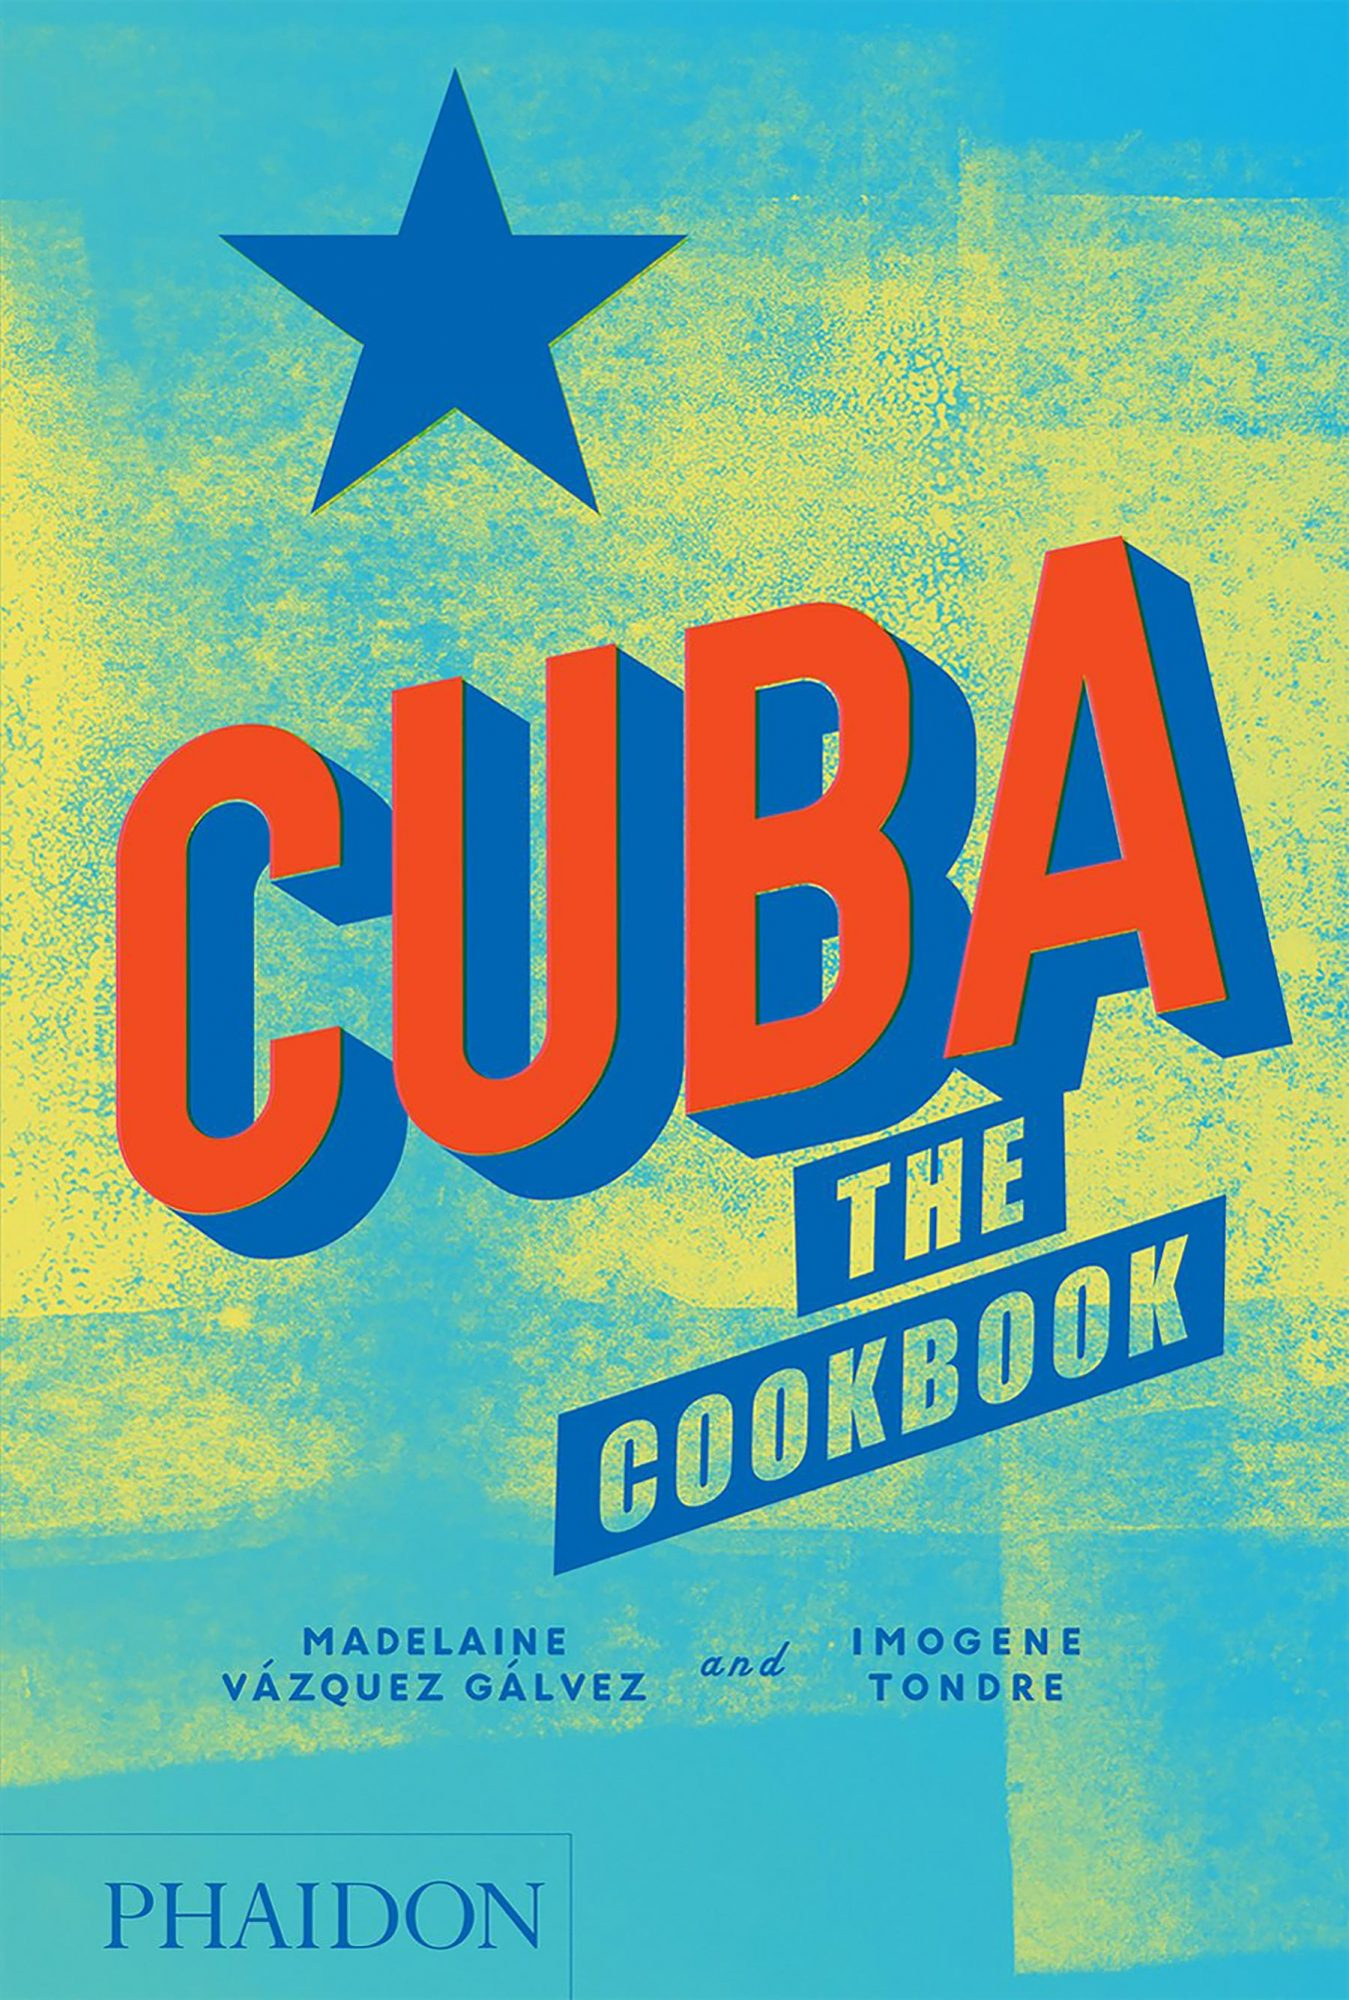 Cuba: The Cookbook Hardcover – June 1, 2018 CR: Phaidon Press